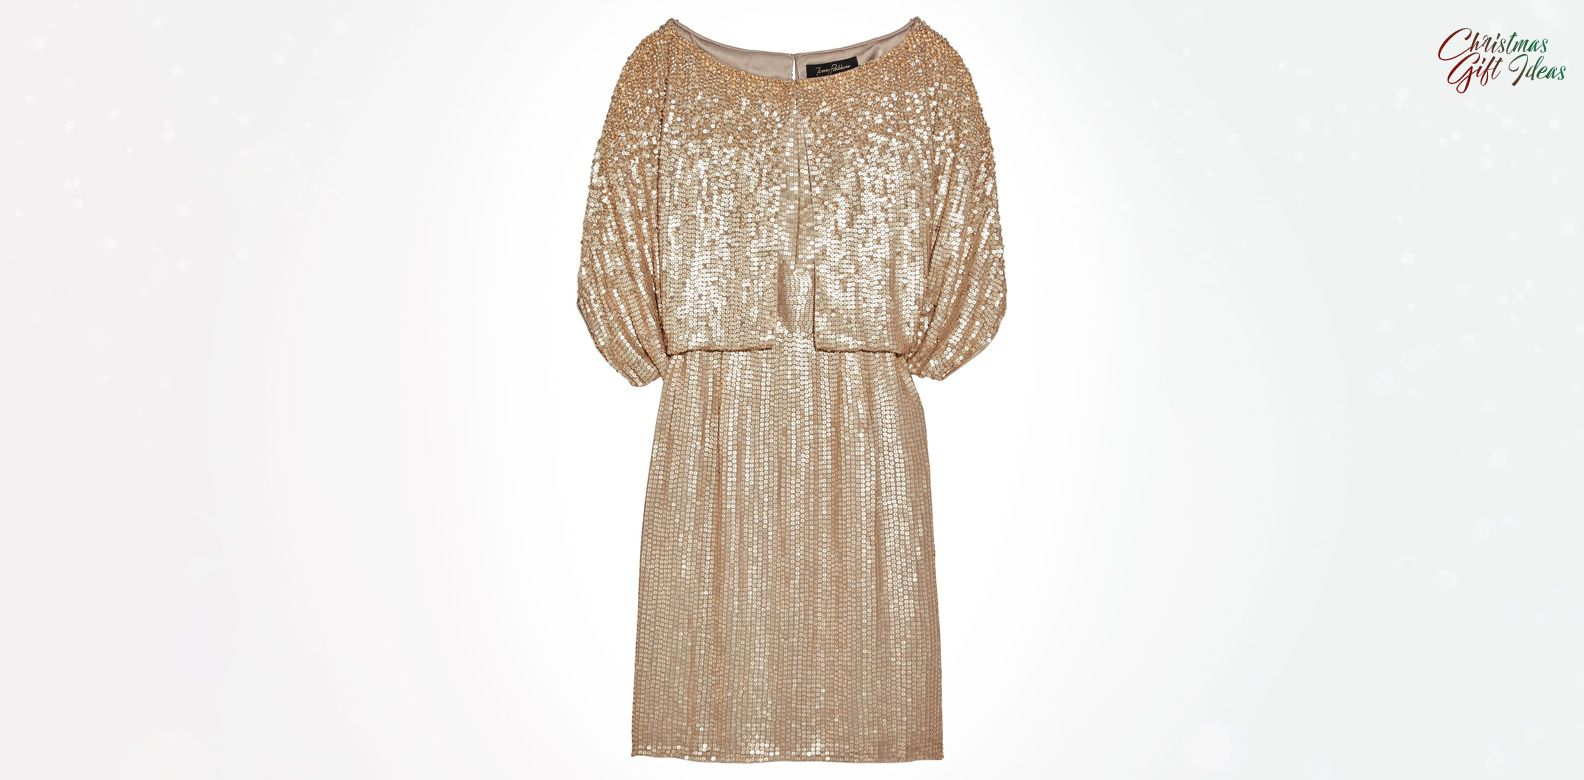 The Little Gold Dress You Need This Christmas